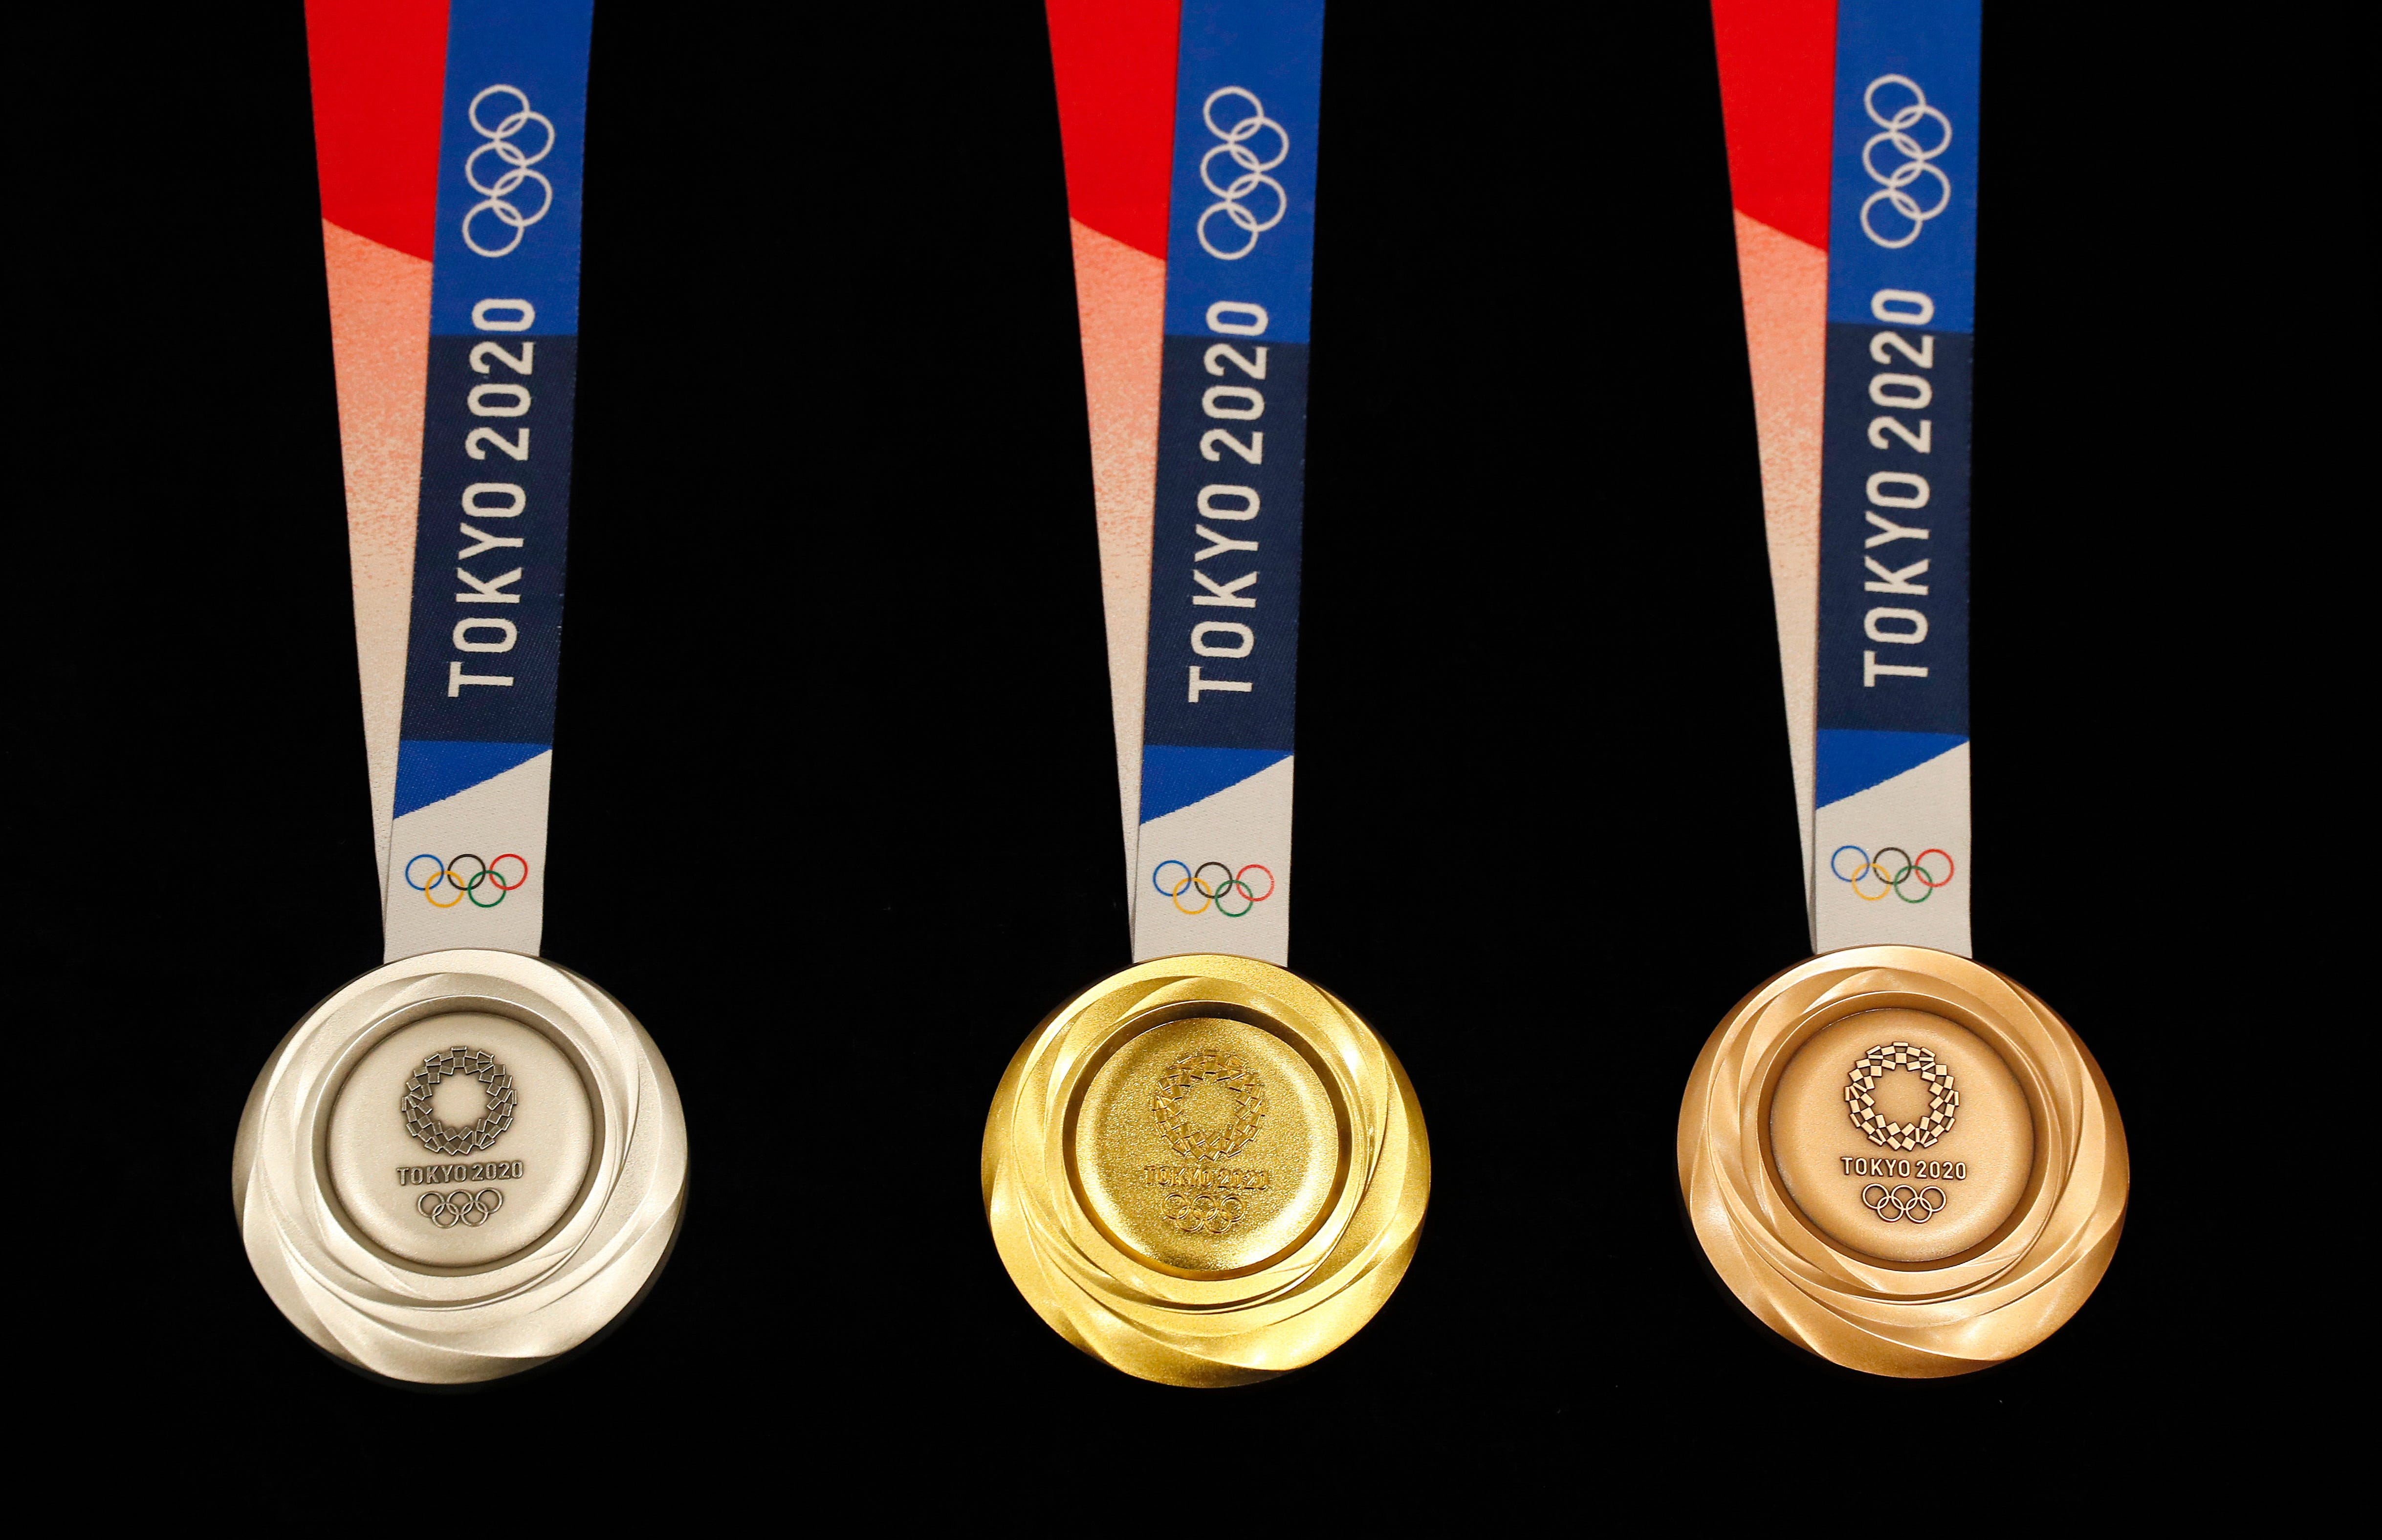 How the medals will look